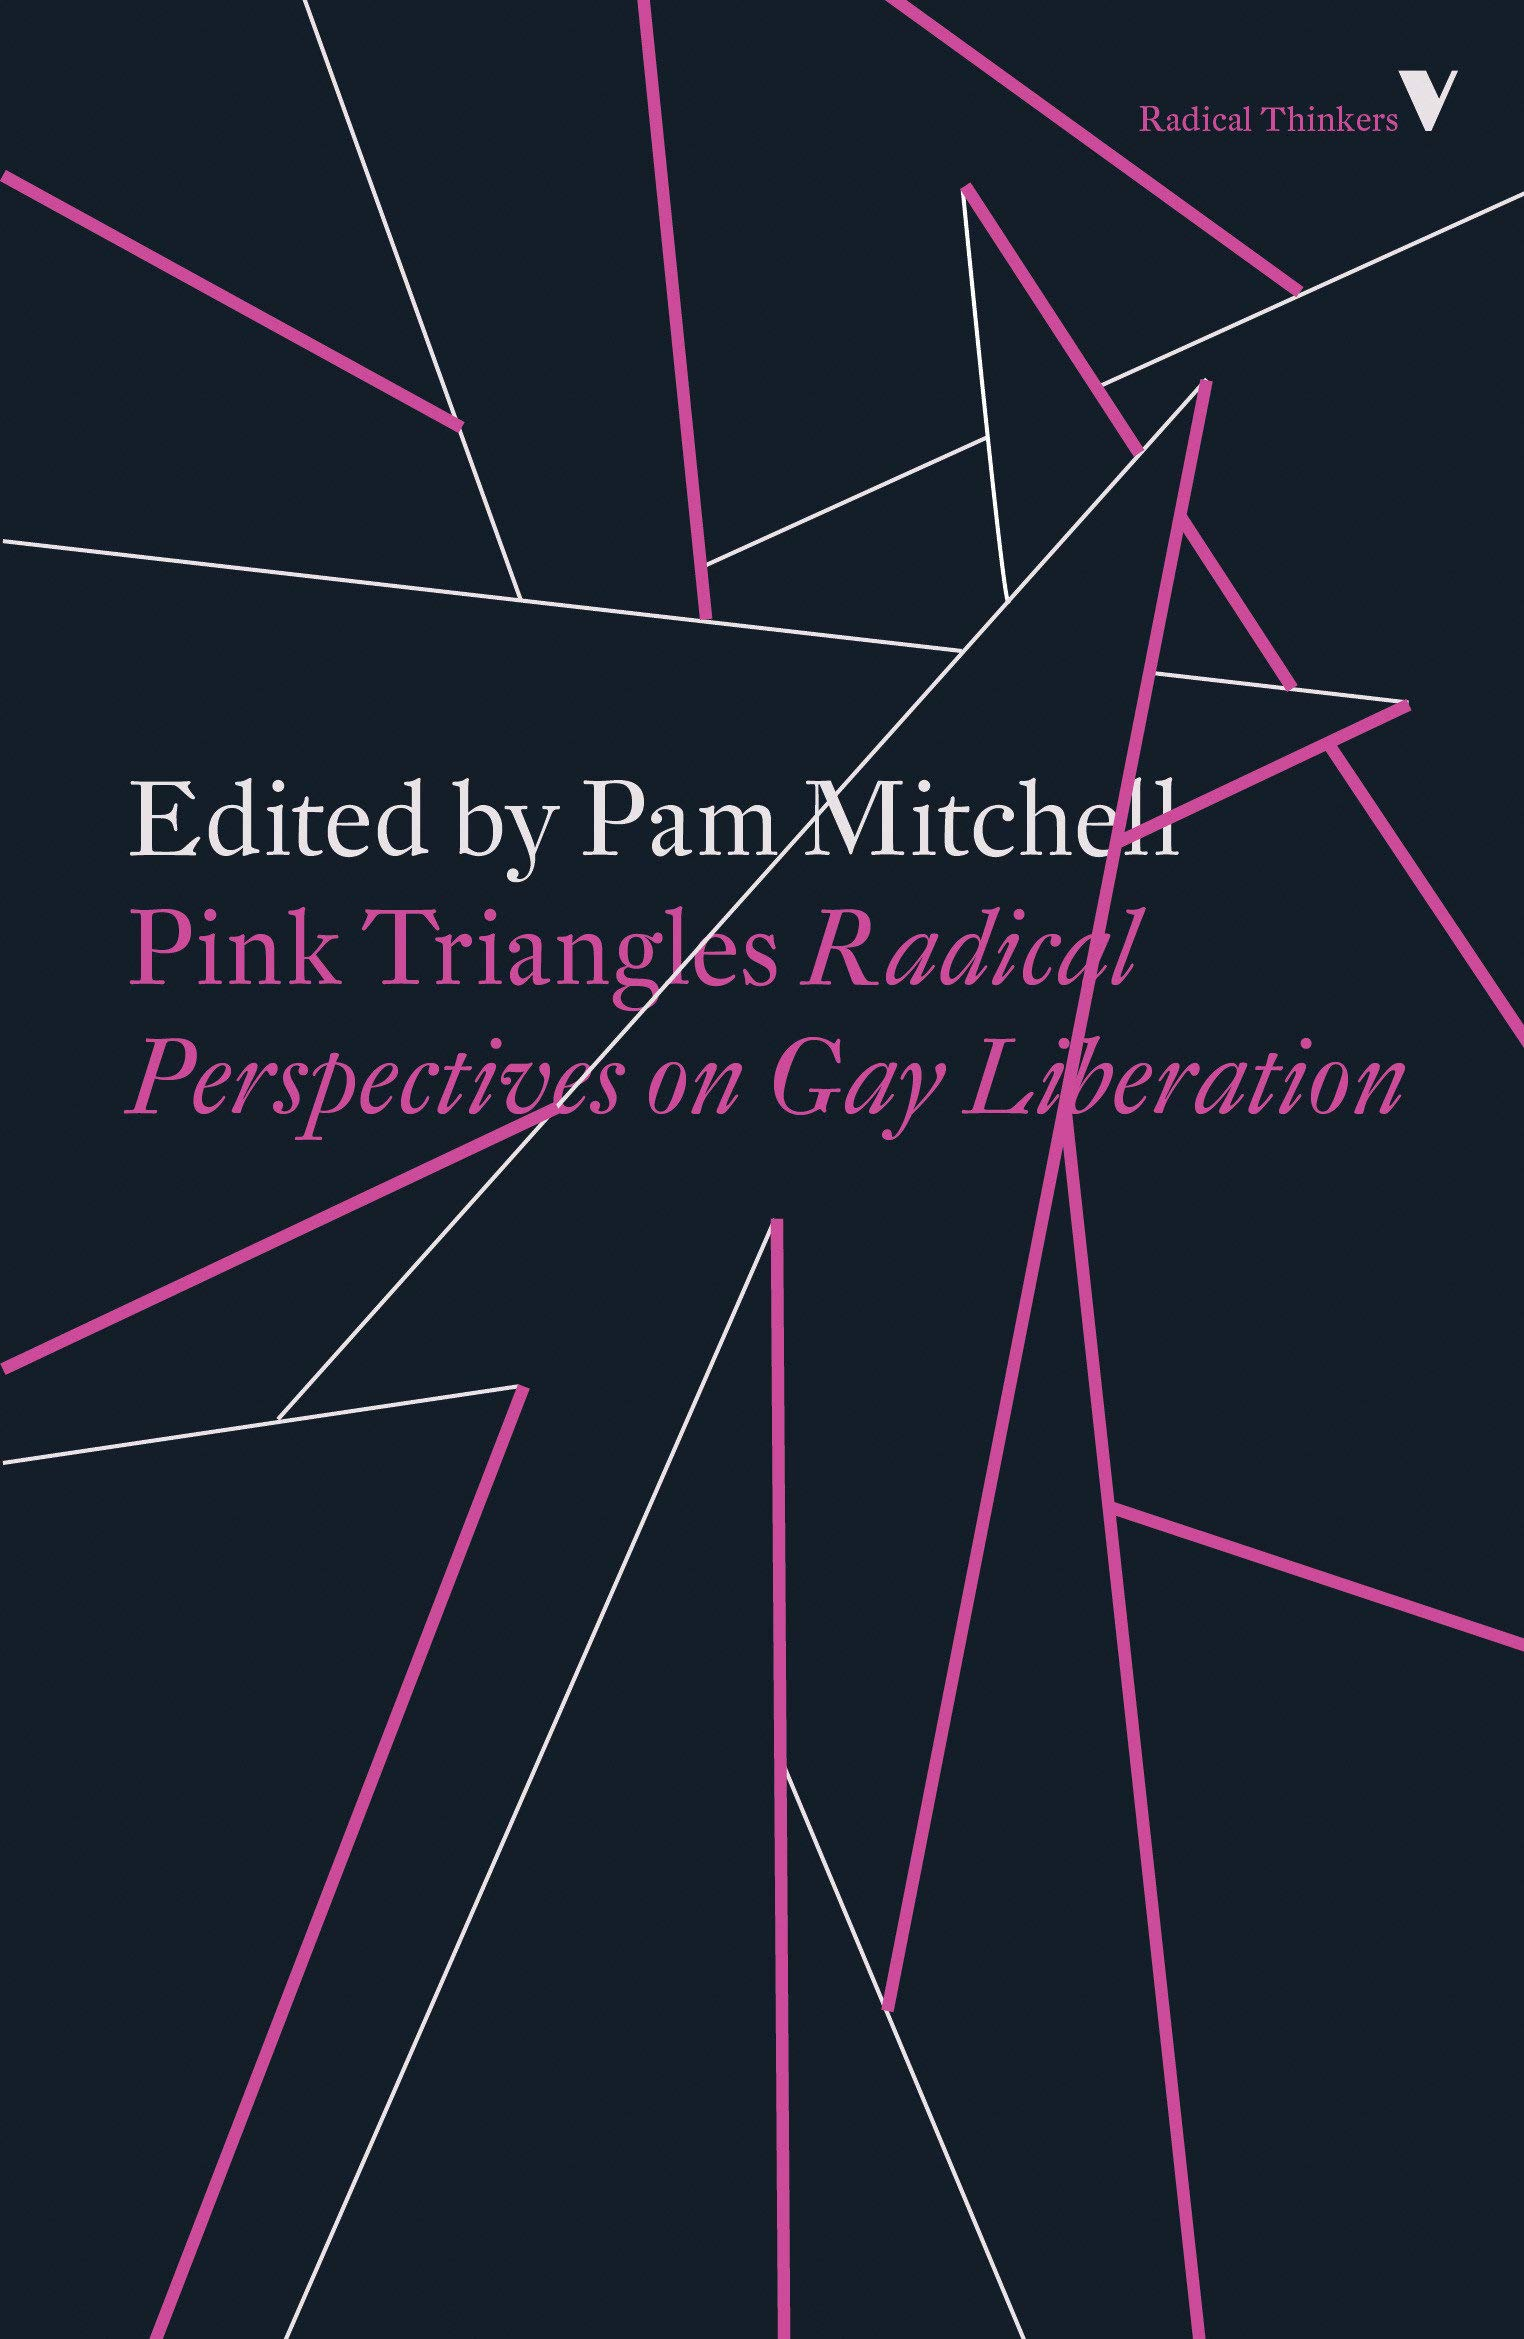 Pink Triangles: Radical Perspectives on Gay Liberation Paperback – October  2, 2018